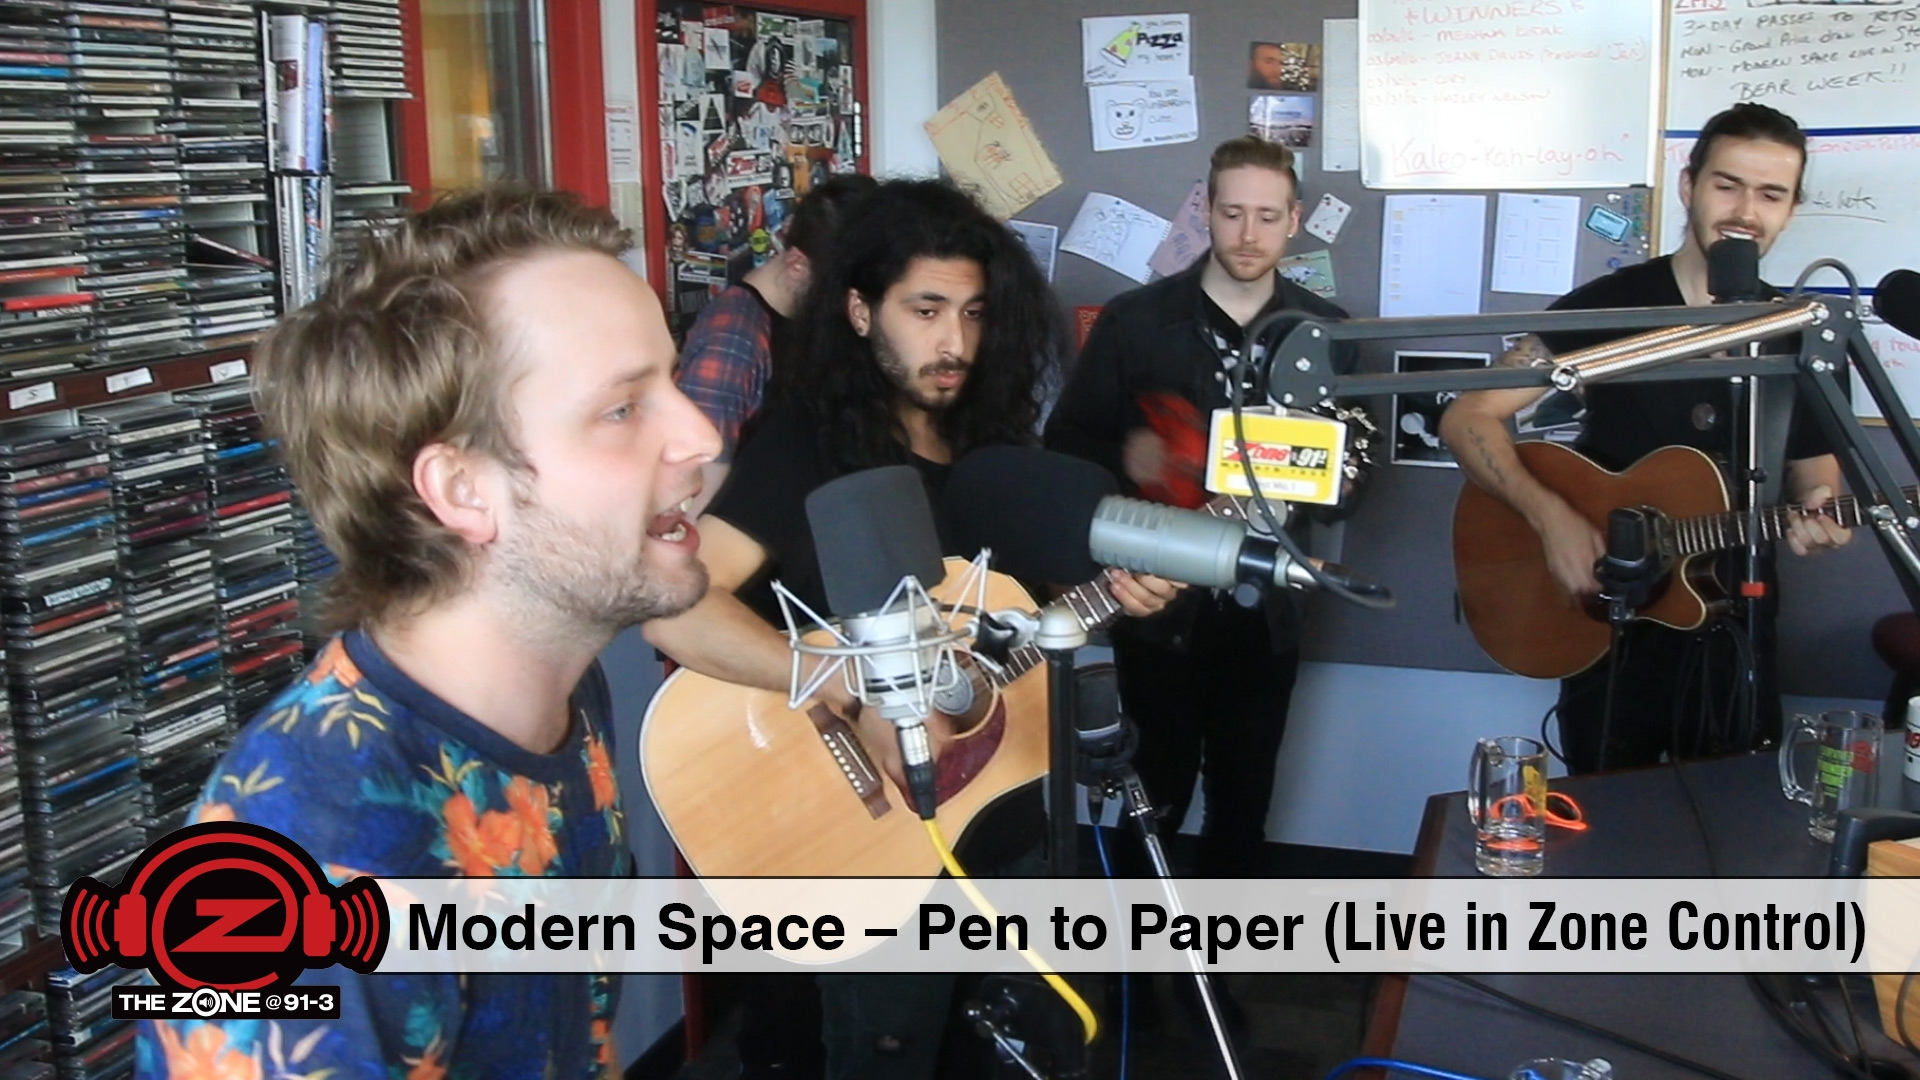 Modern Space - Pen to Paper (Live in Zone Control)